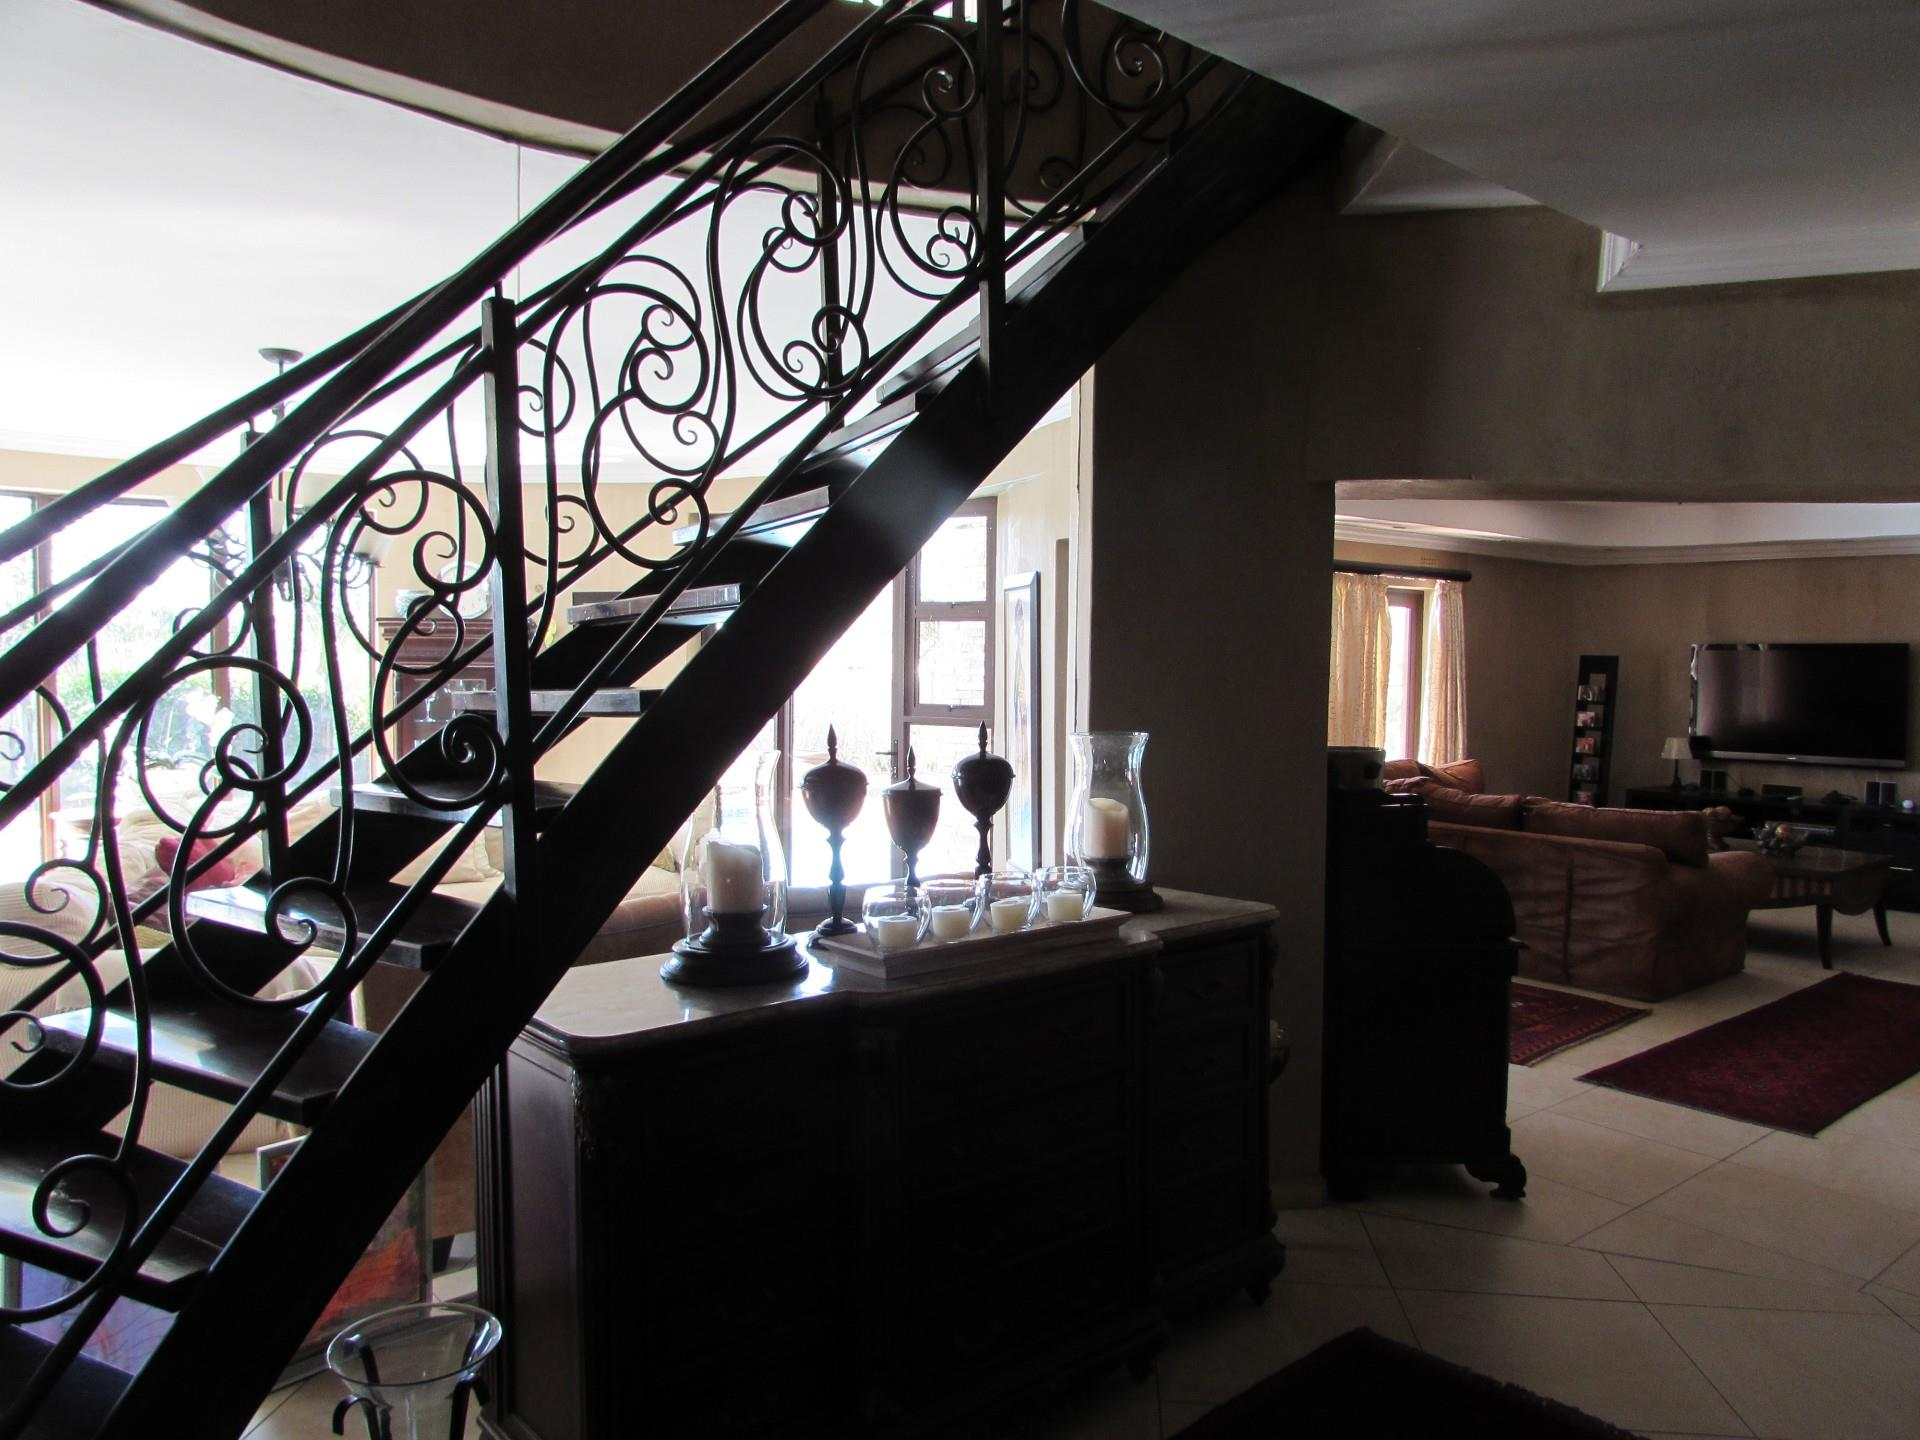 8 Bedroom House For Sale in Mokolodi 1